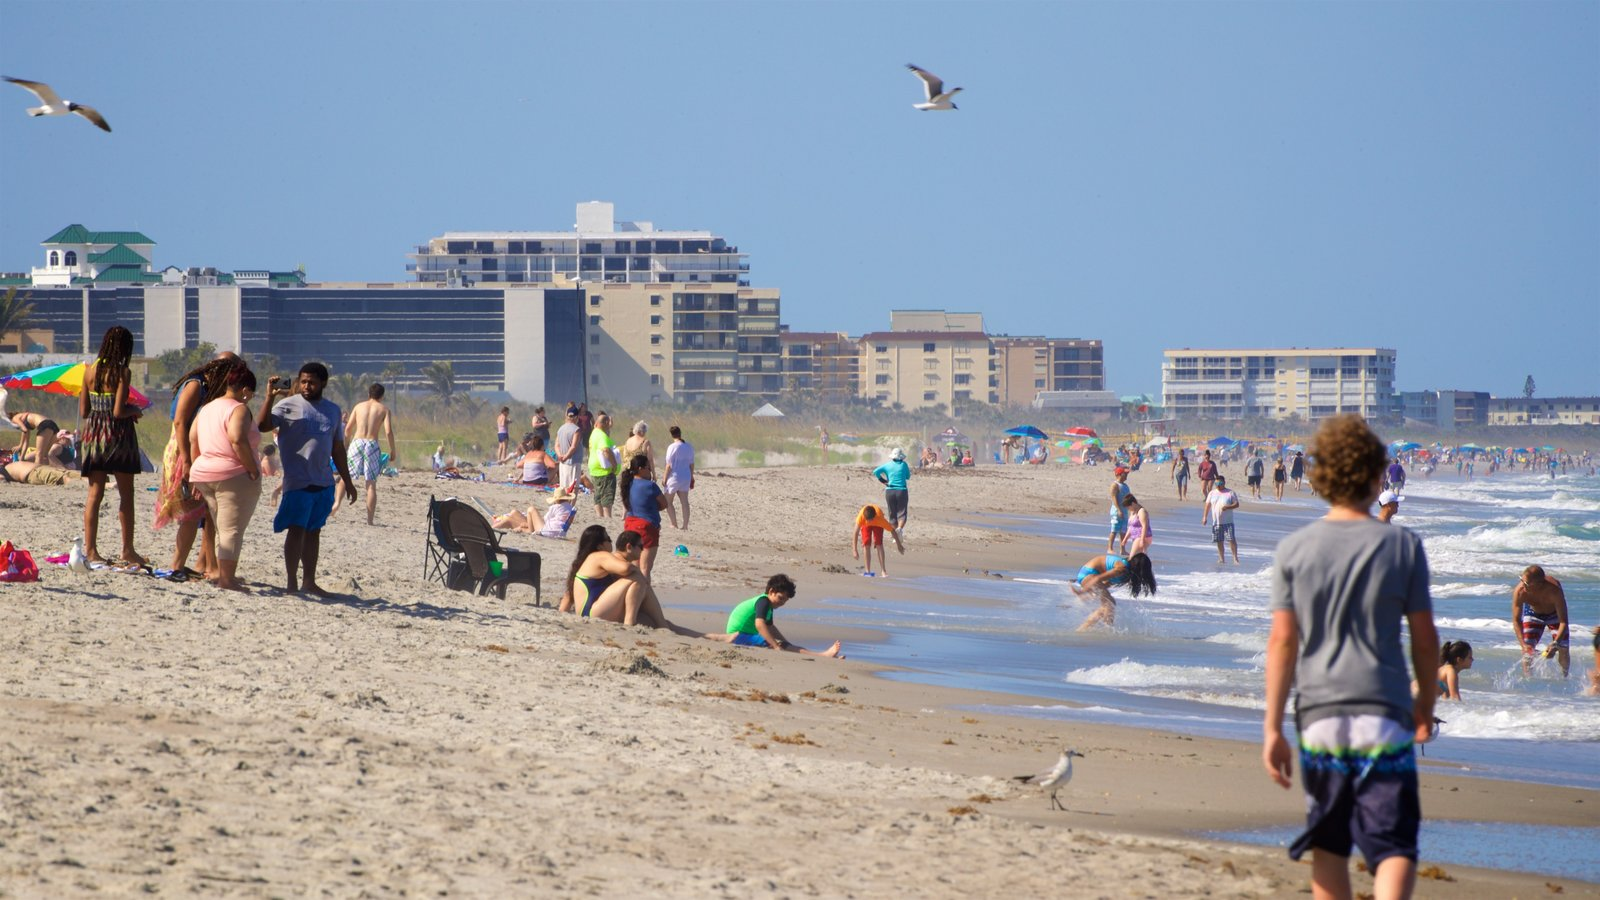 Cocoa Beach showing a beach and general coastal views as well as a small group of people